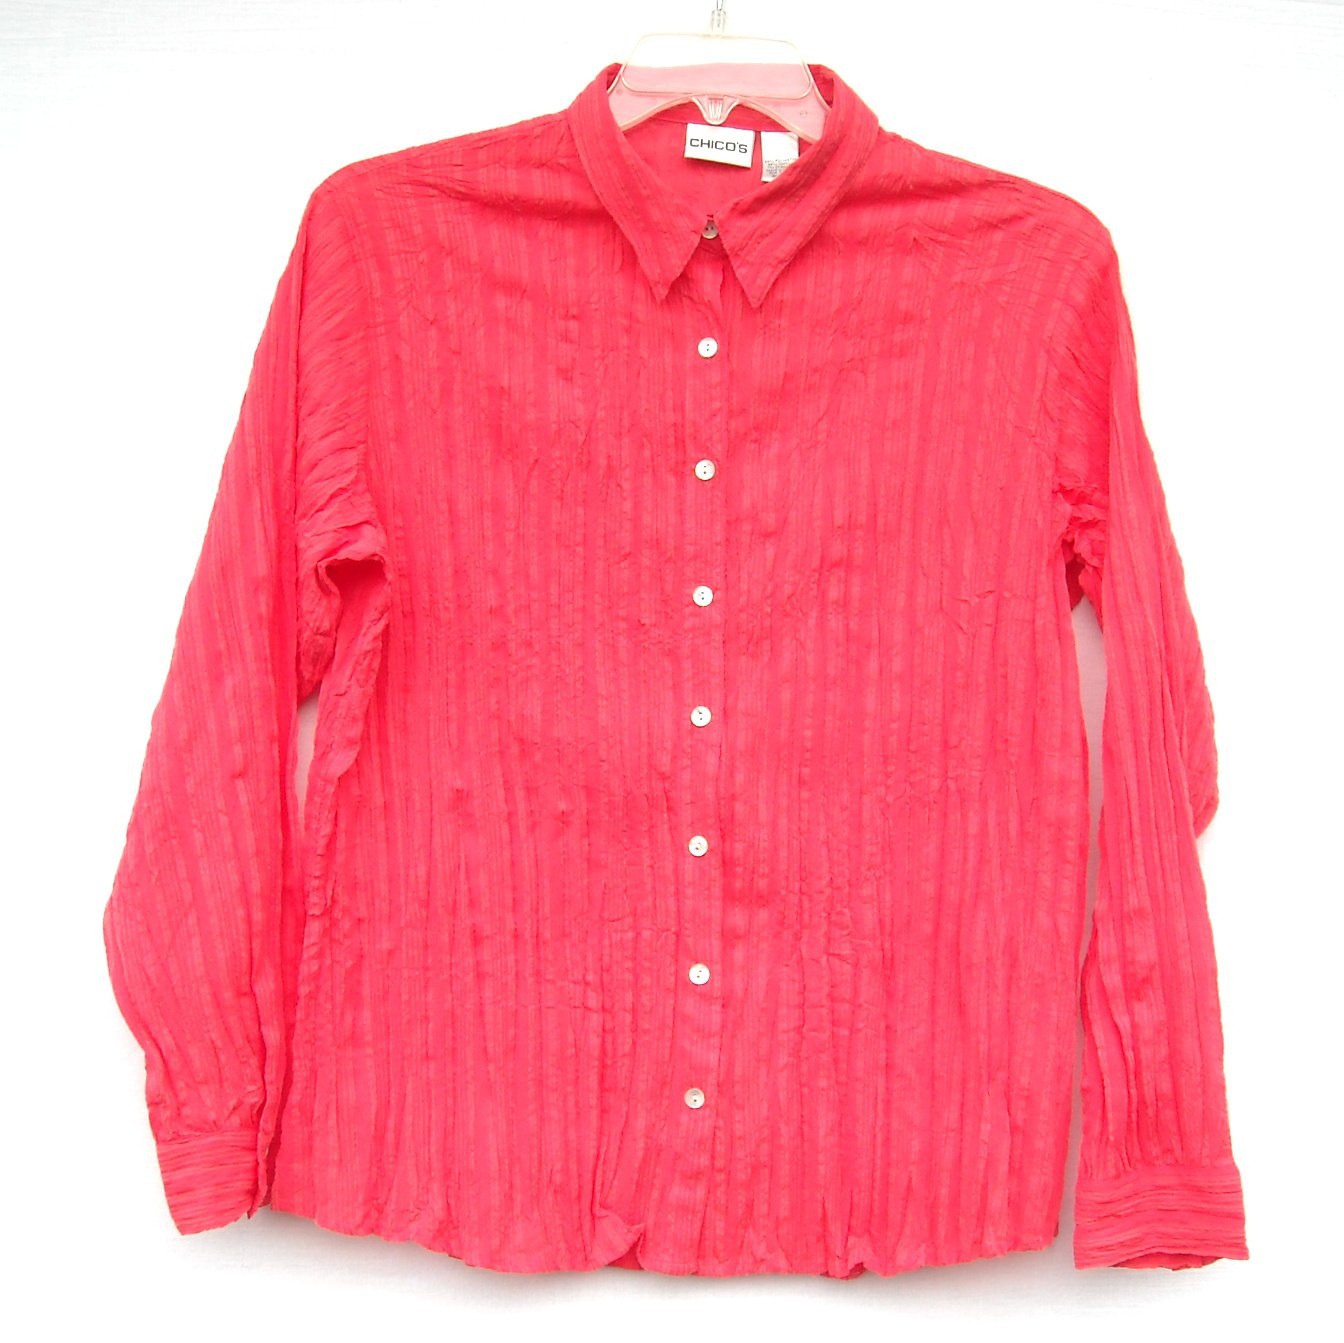 Chicos Crinkle Button Up Long Sleeve Red Shirt Blouse Top Size 2